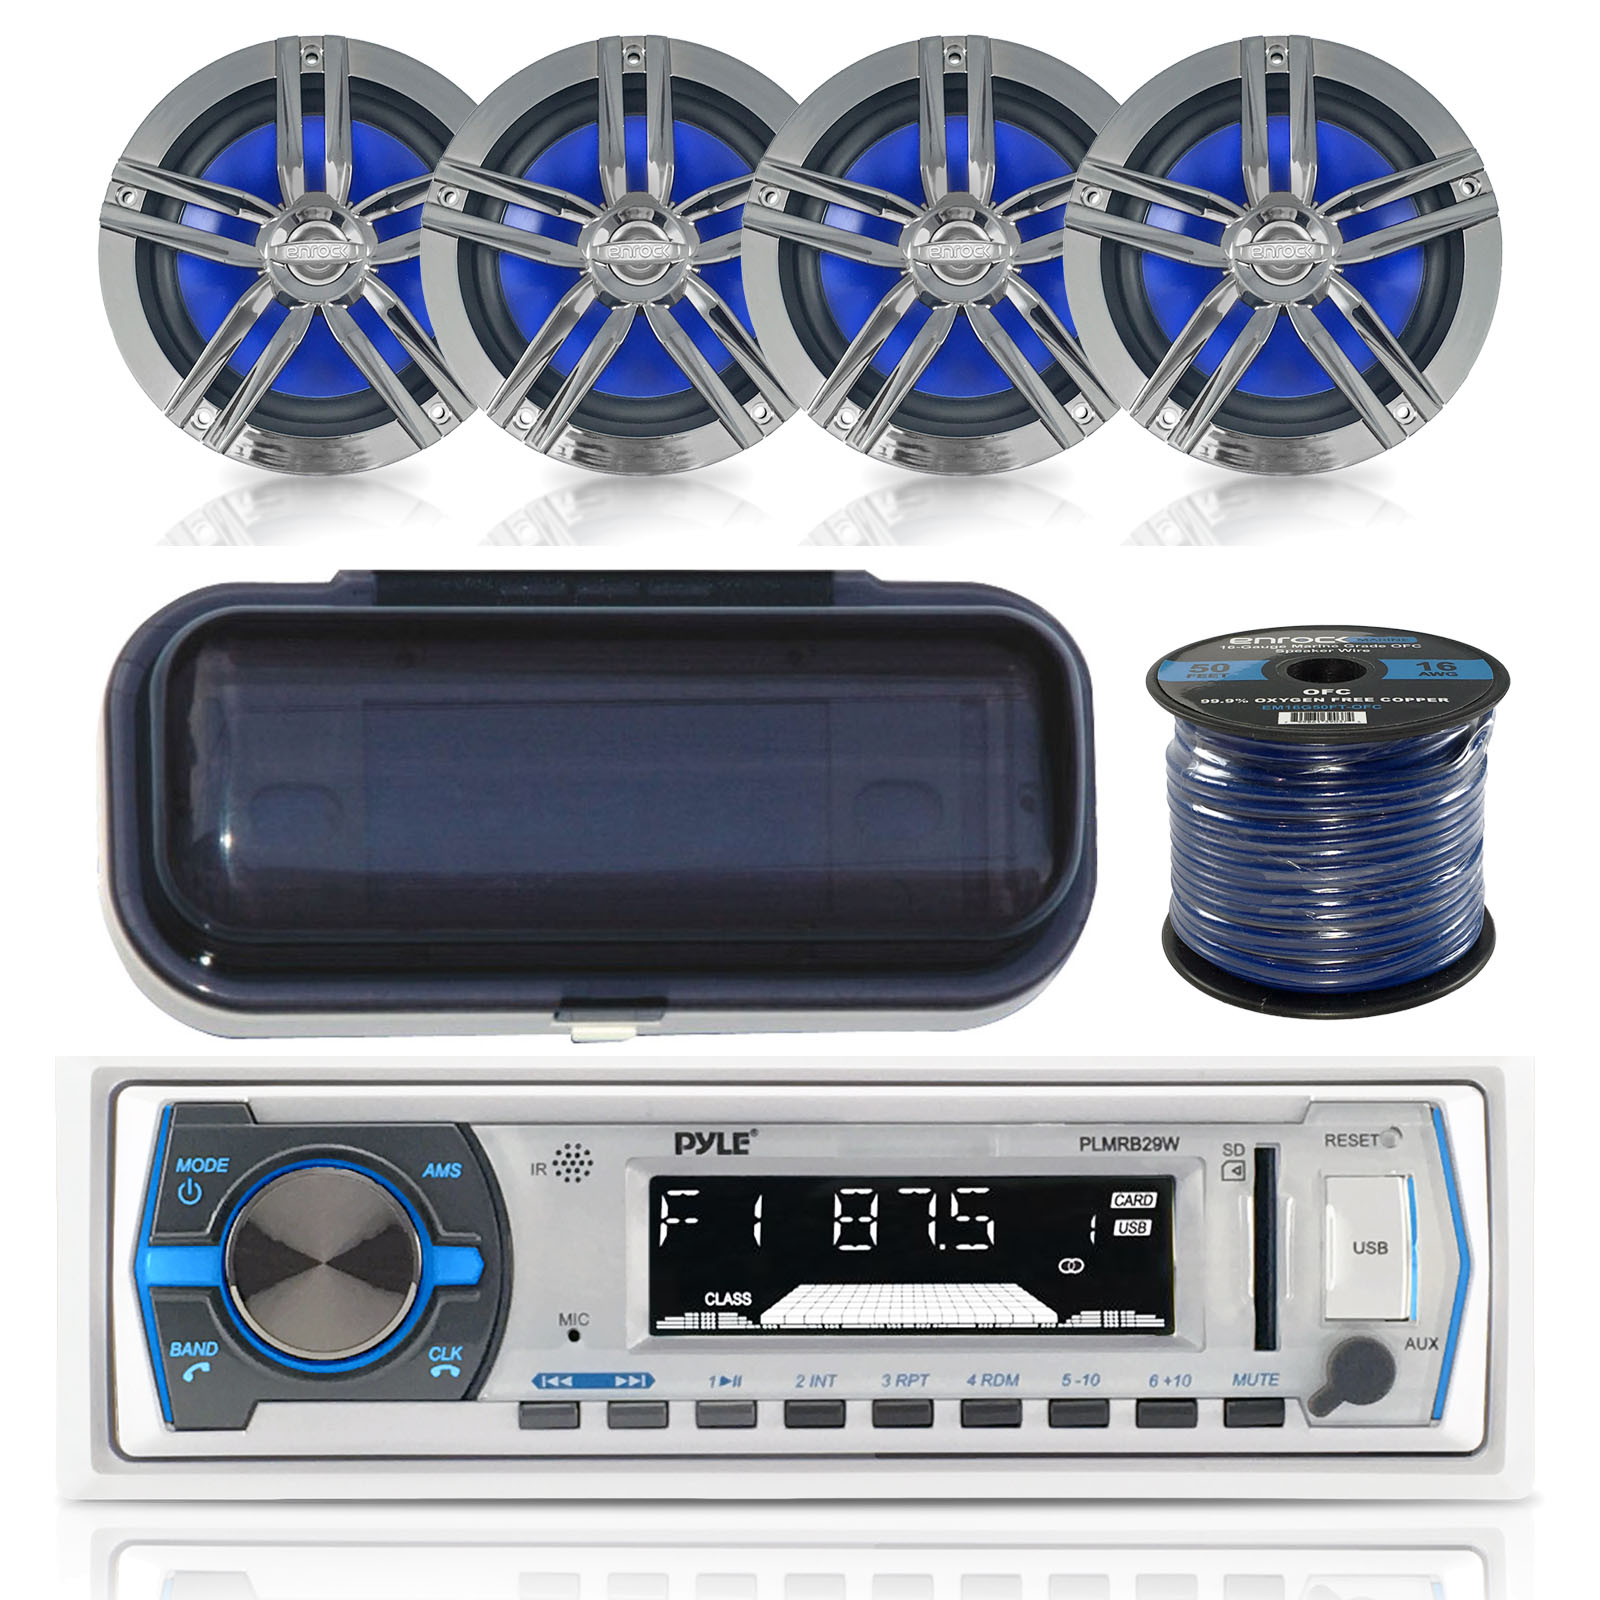 """Pyle PLMRB29W Marine Boat USB/SD/MP3 Bluetooth Stereo Receiver With Waterproof Cover Bundle Combo With 4x Enrock 6.5"""" Inch Dual-Cone Chrome/Black Audio Coaxial Speakers + Enrock 50Ft 16g Speaker Wire"""